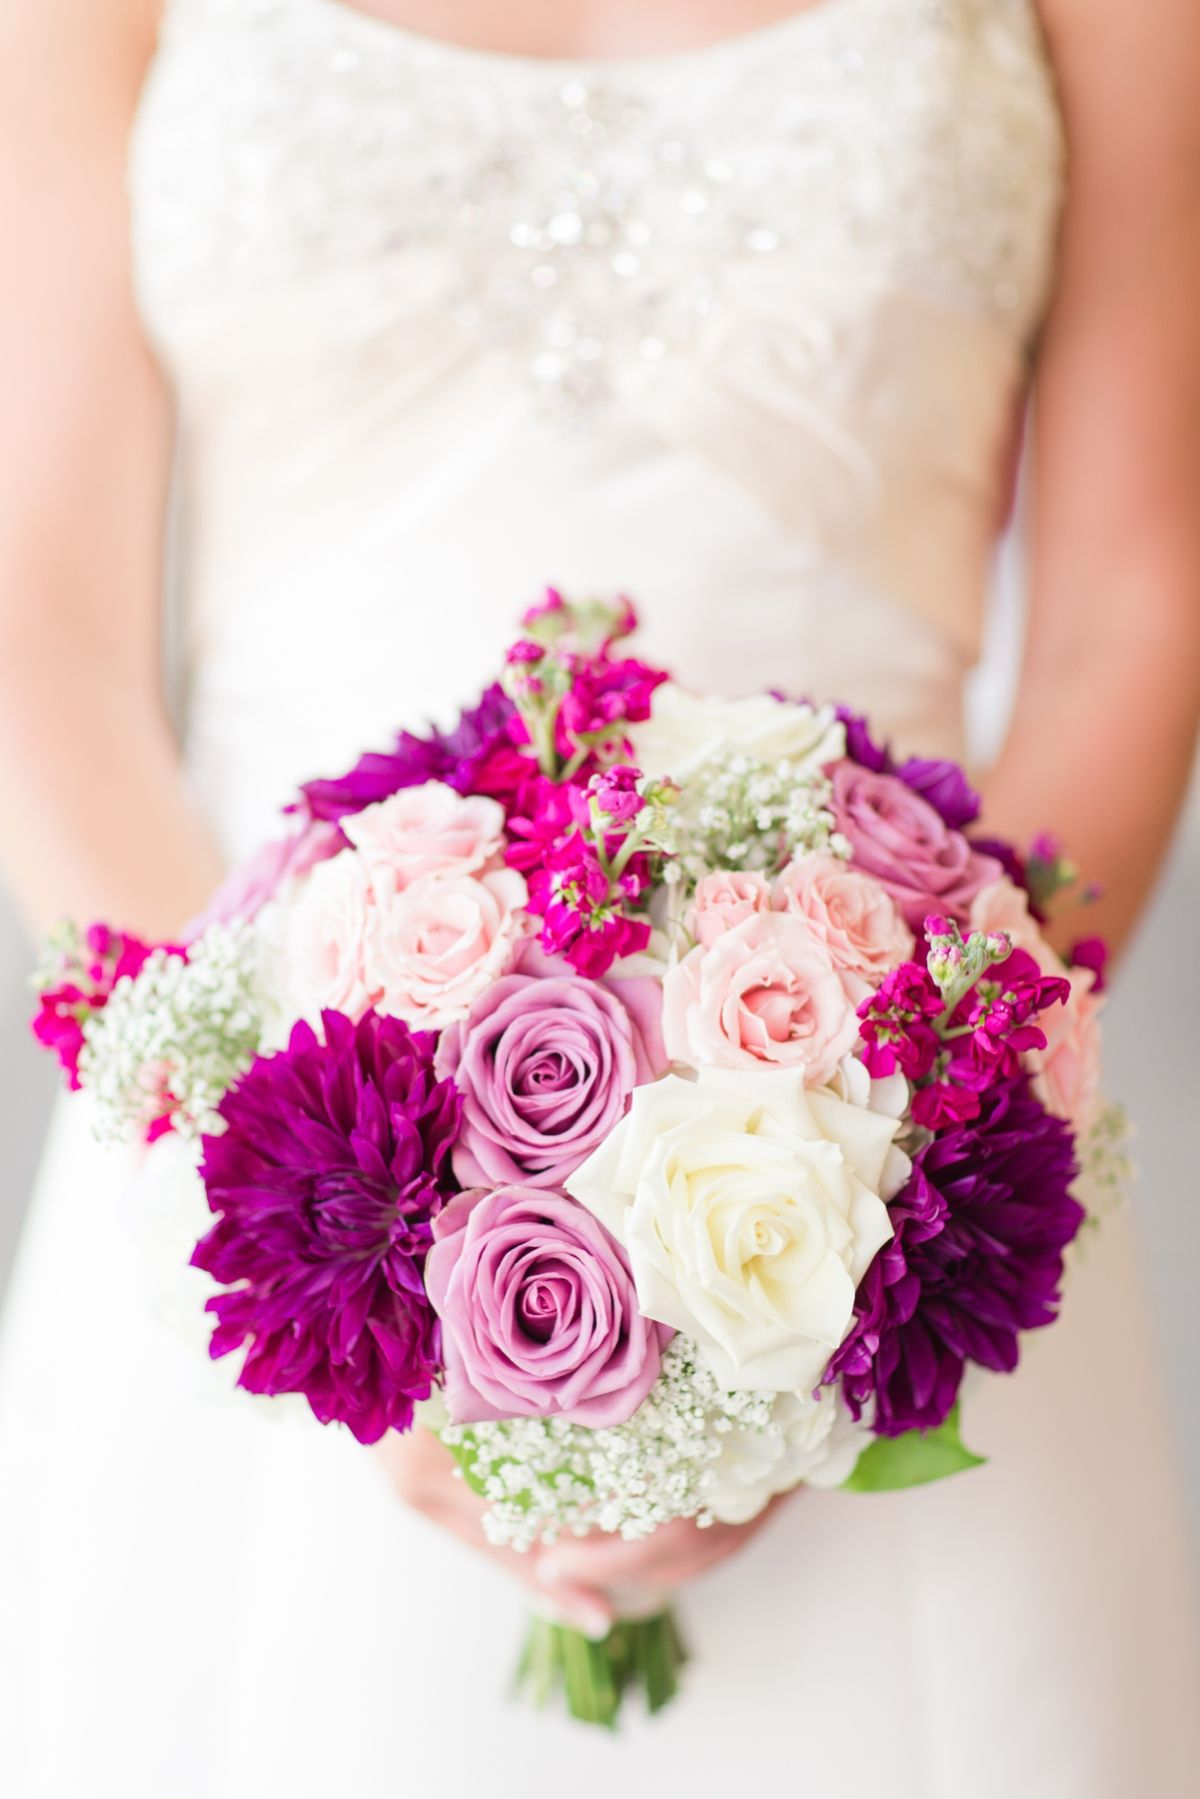 Sangria Tones. Bridal Bouquet with purples, pinks, blush flowers ...